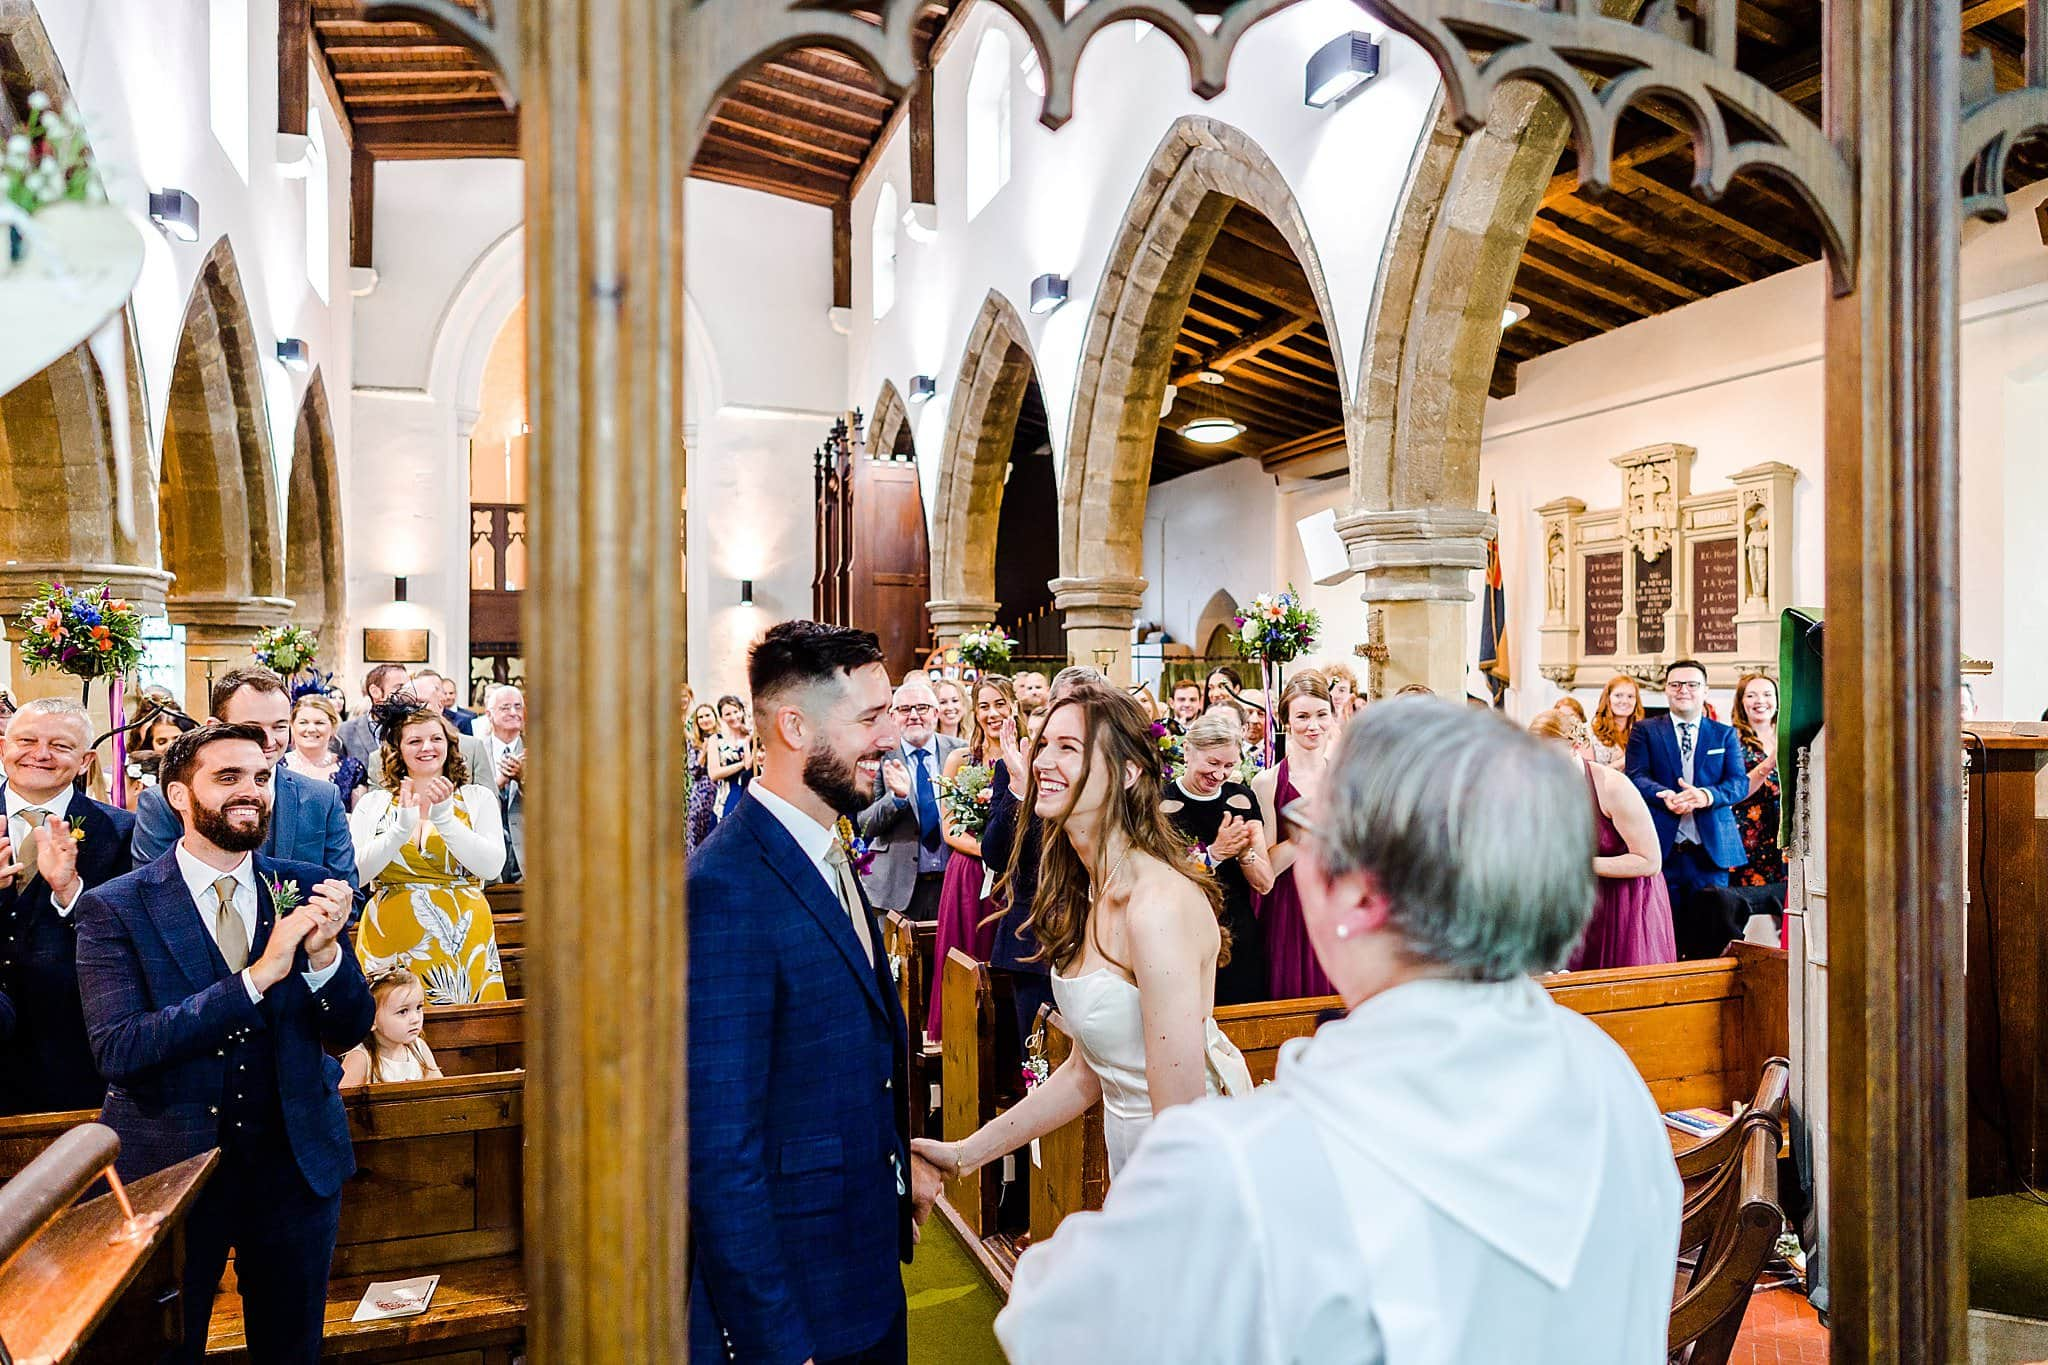 Wedding guests cheer and clap as bride and groom are told they are now married